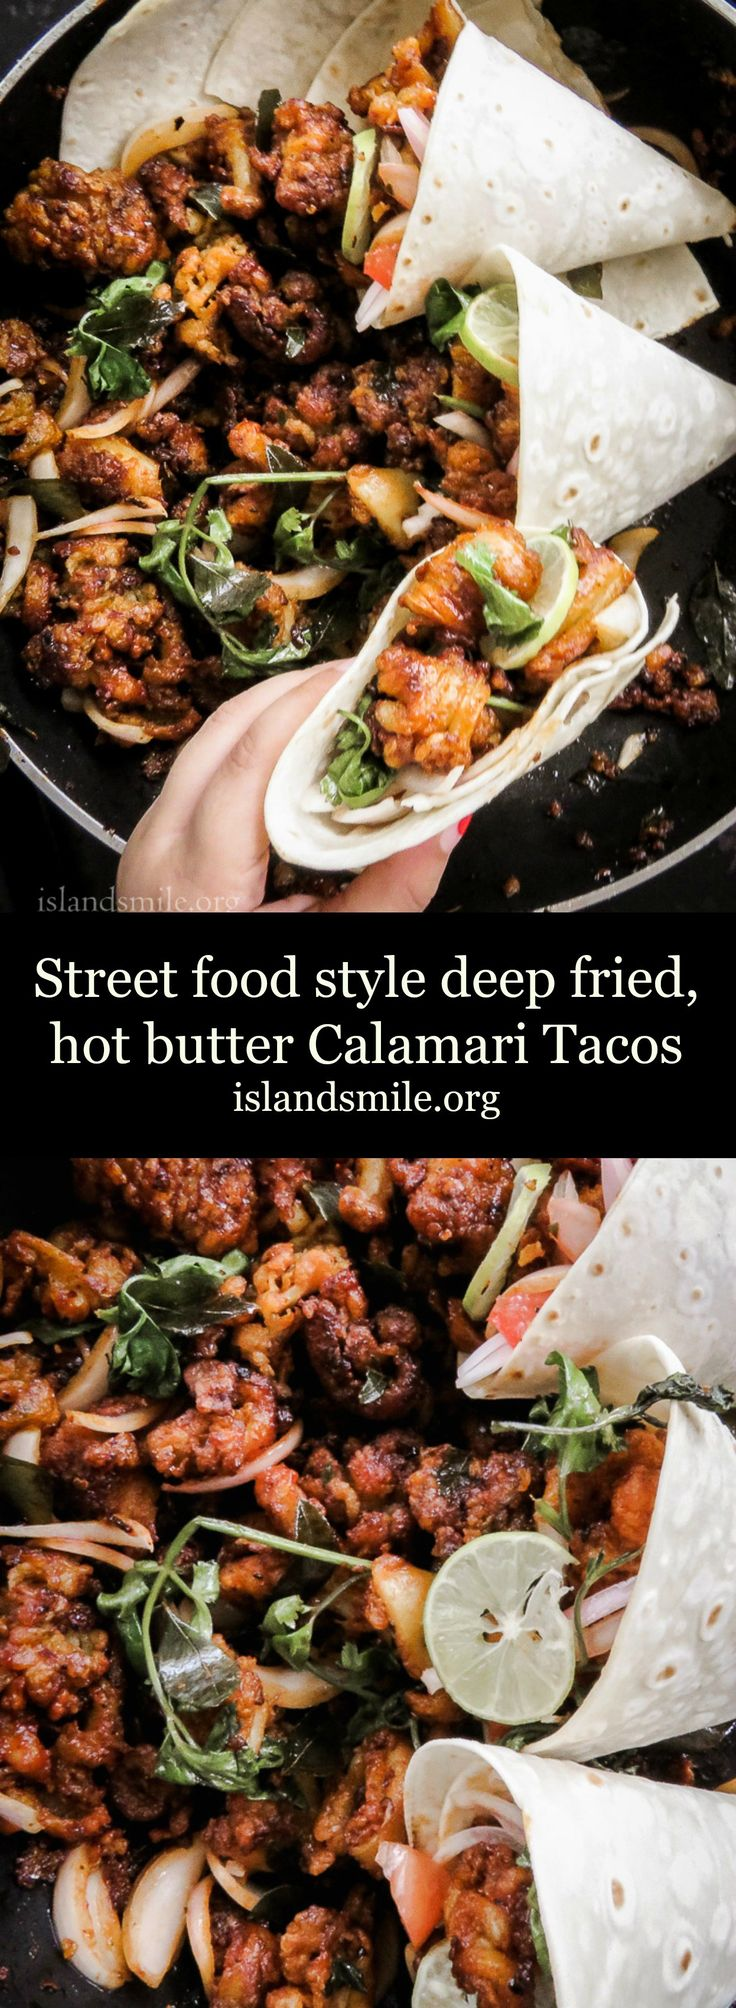 Street food style deep fried, hot butter Calamari Tacos image